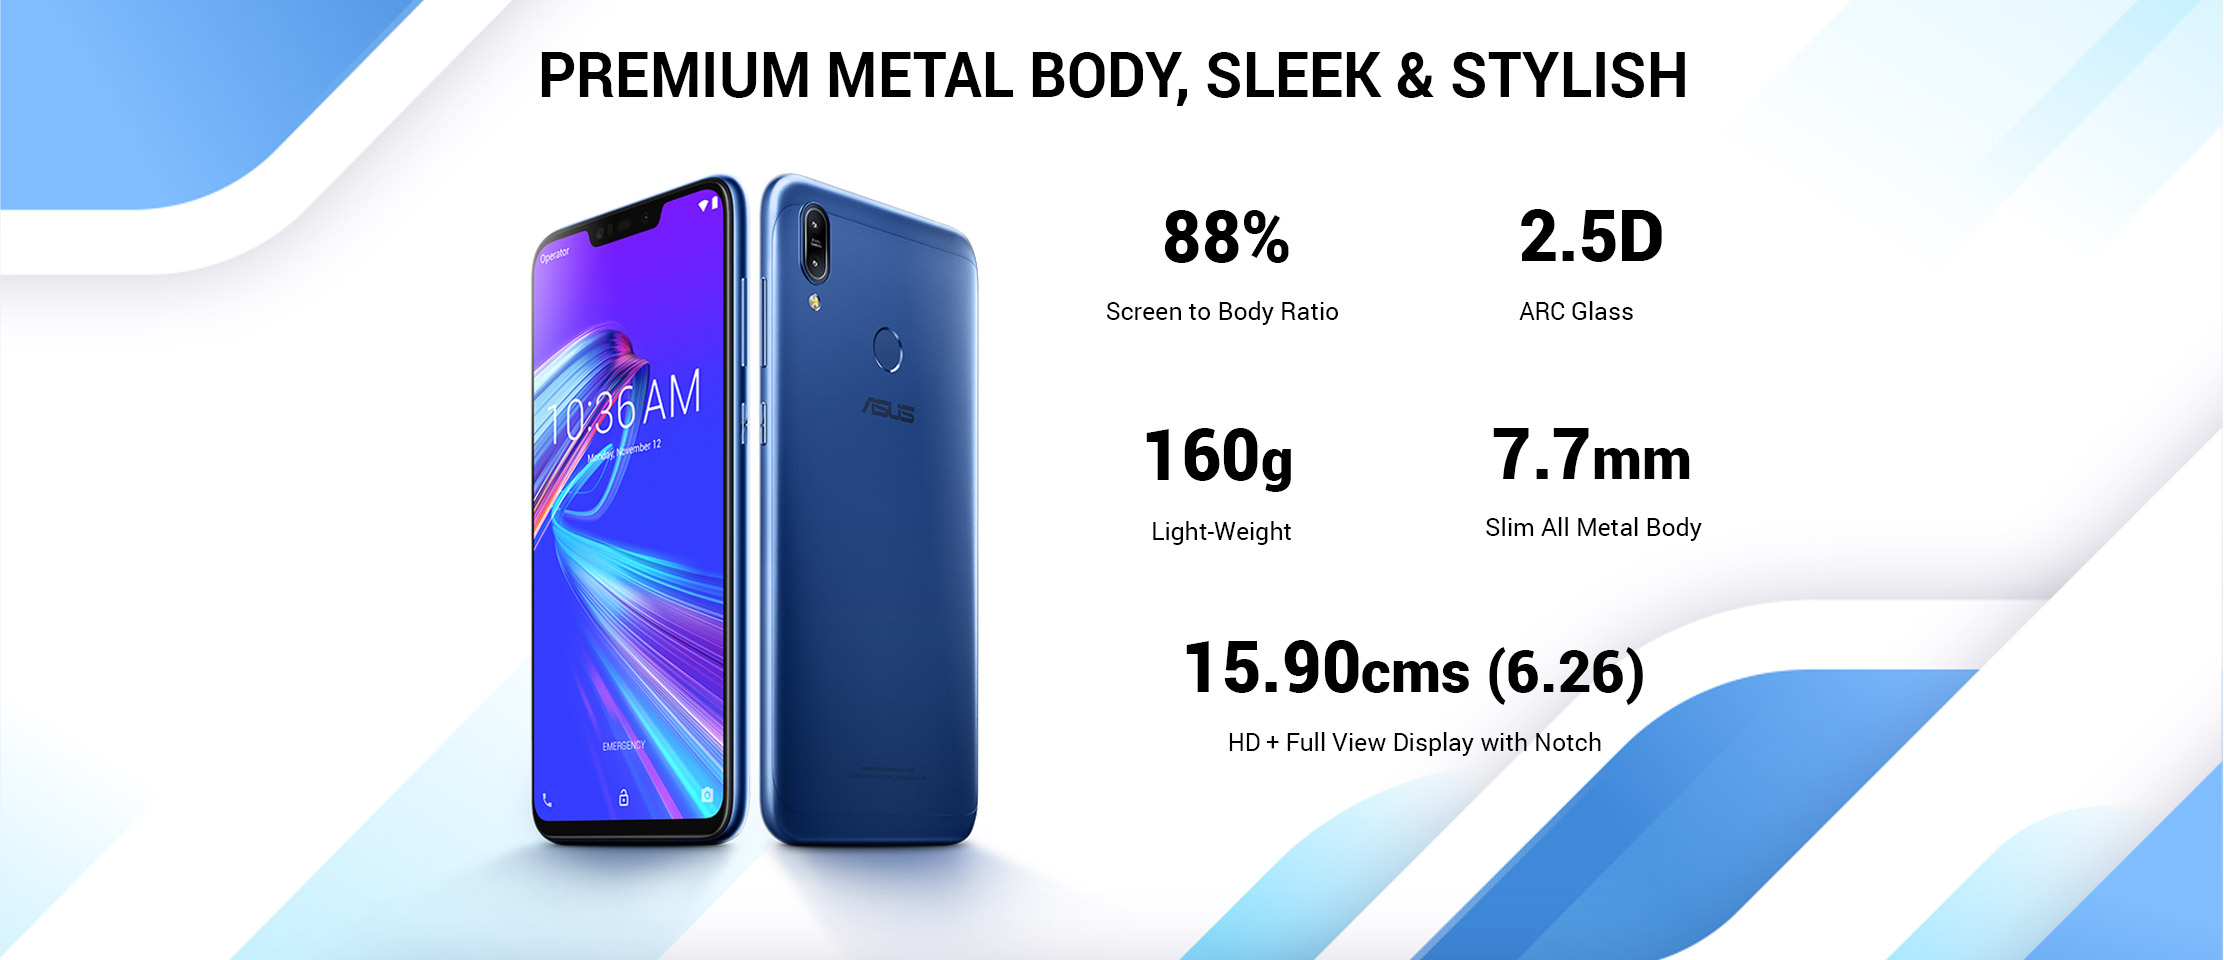 Asus Zenfone Max Pro M2 & Max M2 launched in India